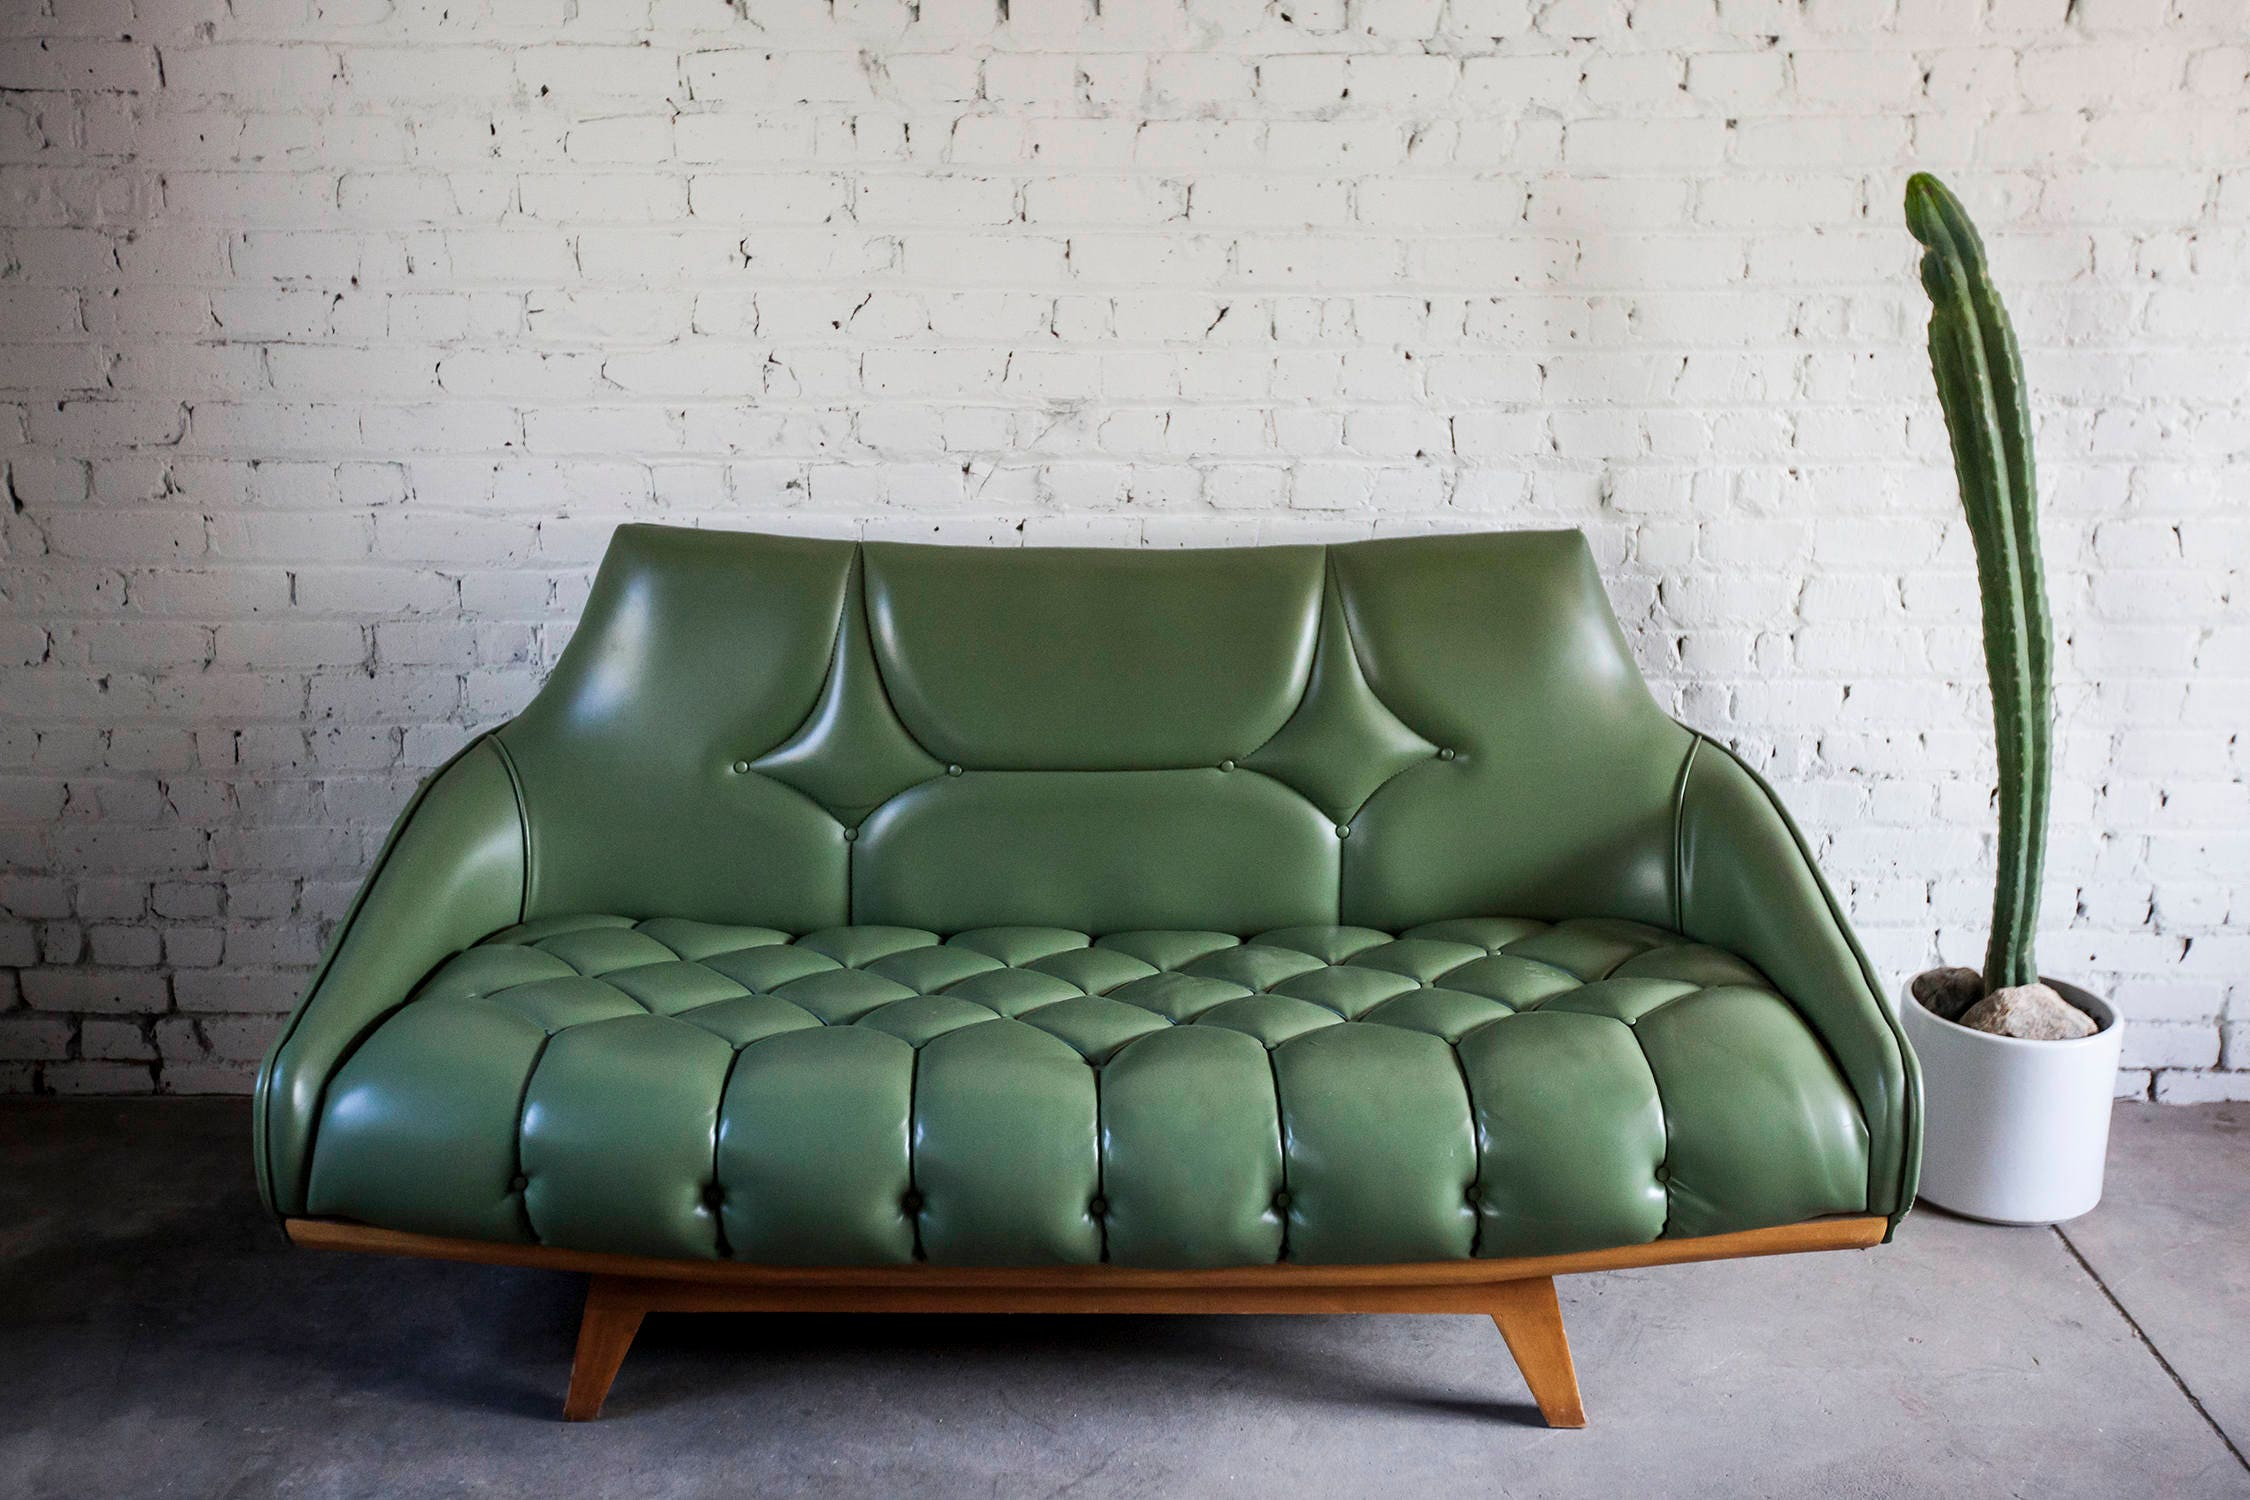 Awe Inspiring Mid Century Green Vinyl Adrian Pearsall Style Loveseat Sofa Onthecornerstone Fun Painted Chair Ideas Images Onthecornerstoneorg